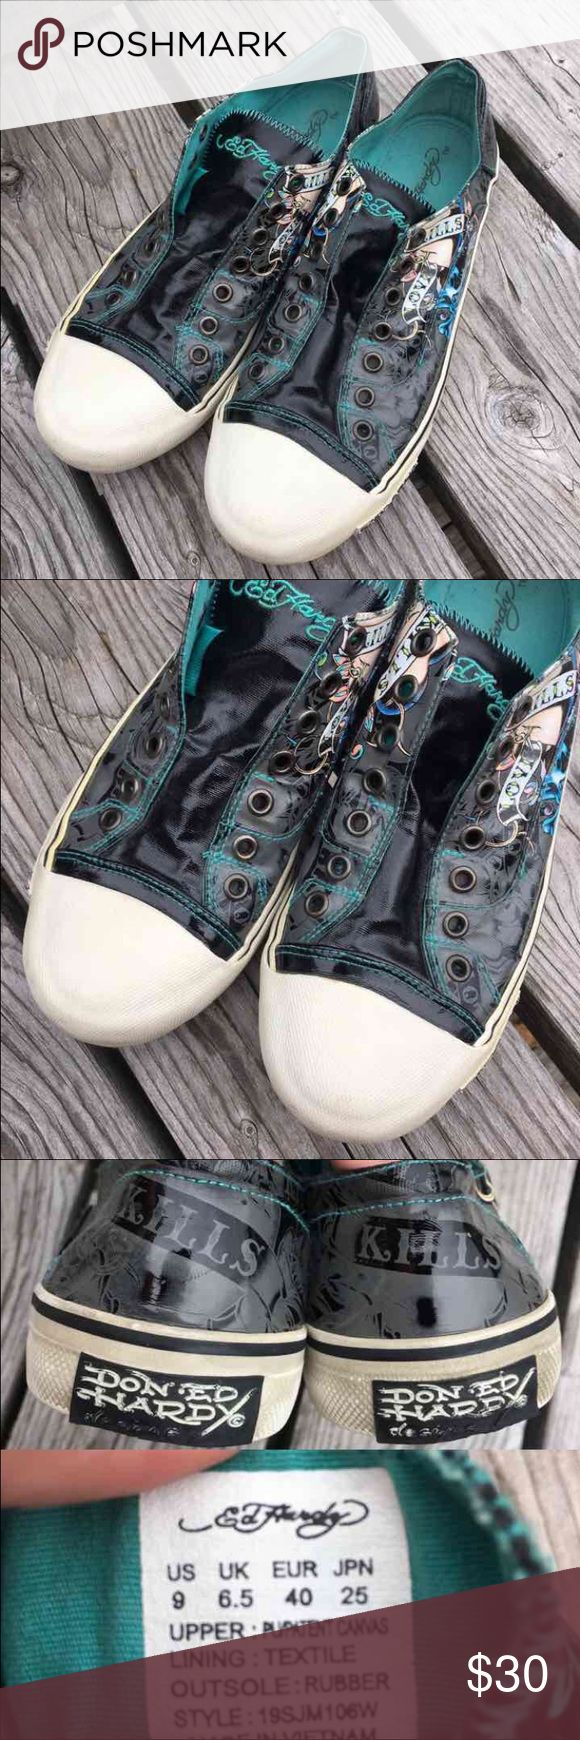 Don Ed Hardy 'Love Kills' Sneakers! EUC! Size EUR 40, US 9 - I feel that PM EUR sizes are off as I wear an 11/42 - so I believe these are a women's 9. Would also work as a men's 7. Please know I am giving the only information that I have. These are in beautiful condition! Don Ed Hardy Shoes Sneakers